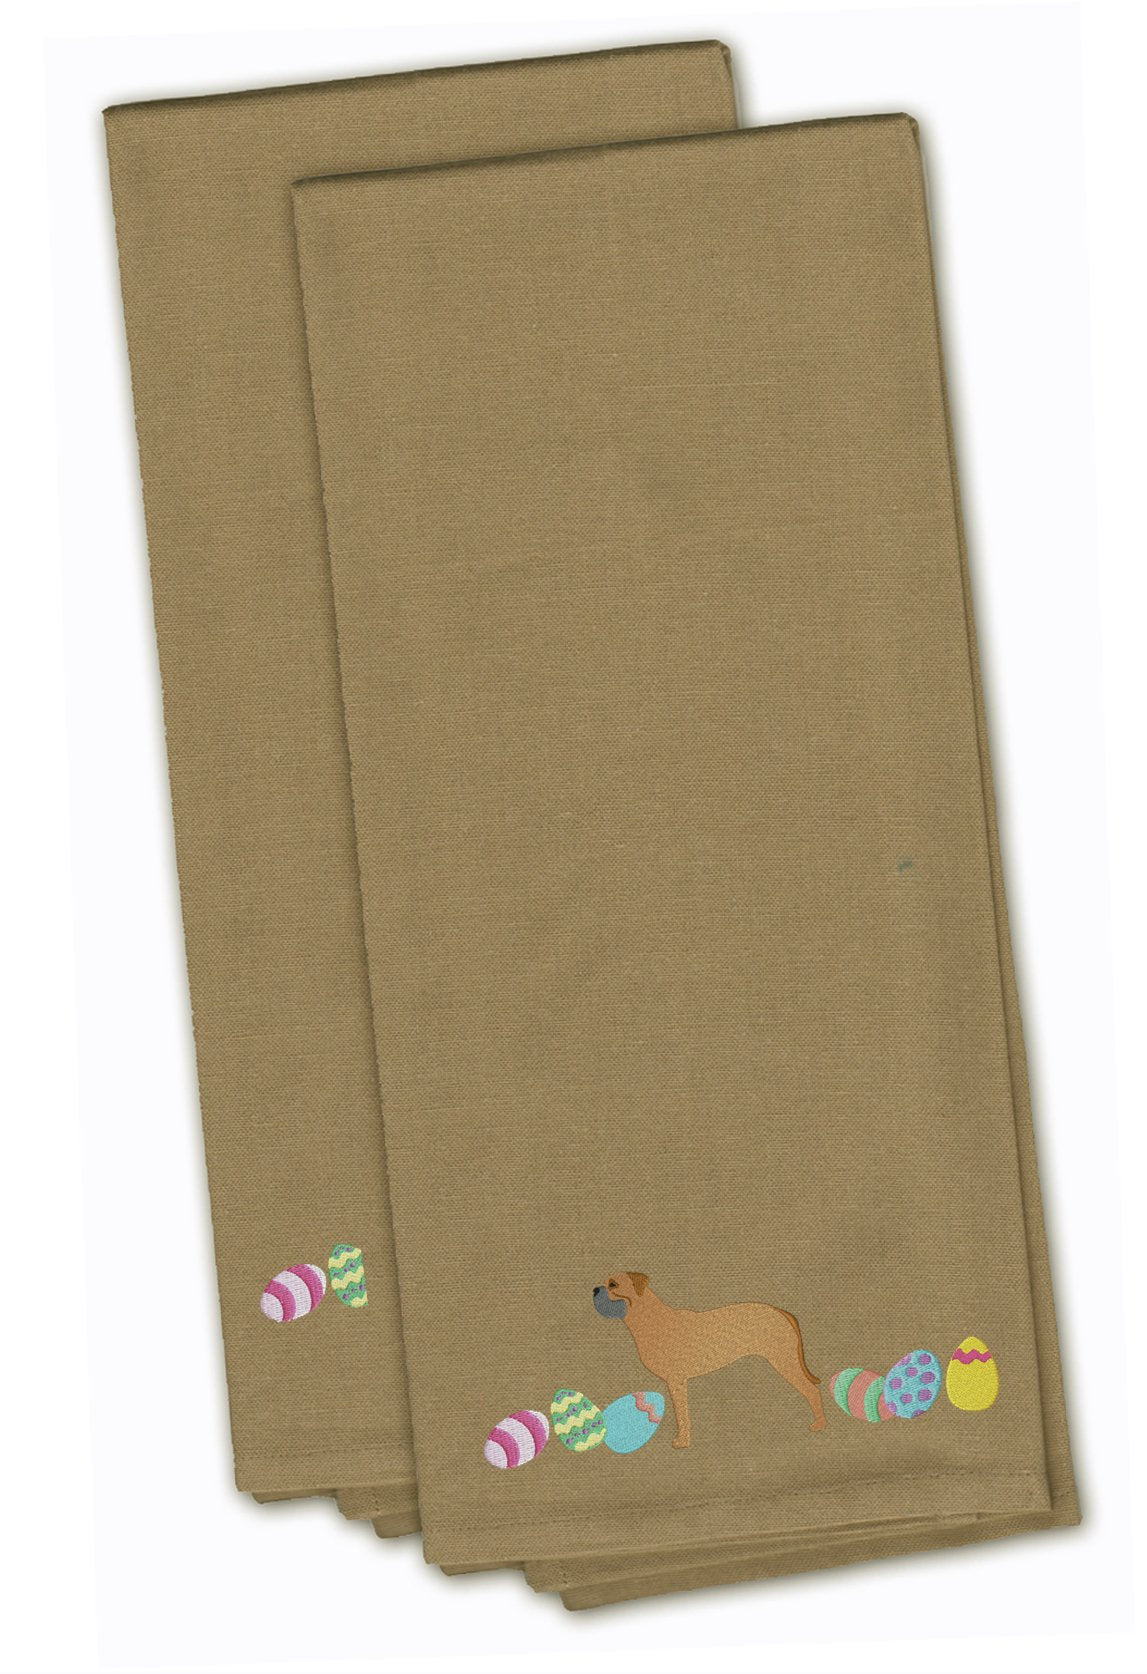 Bullmastiff Easter Tan Embroidered Kitchen Towel Set of 2 CK1619TNTWE by Caroline's Treasures